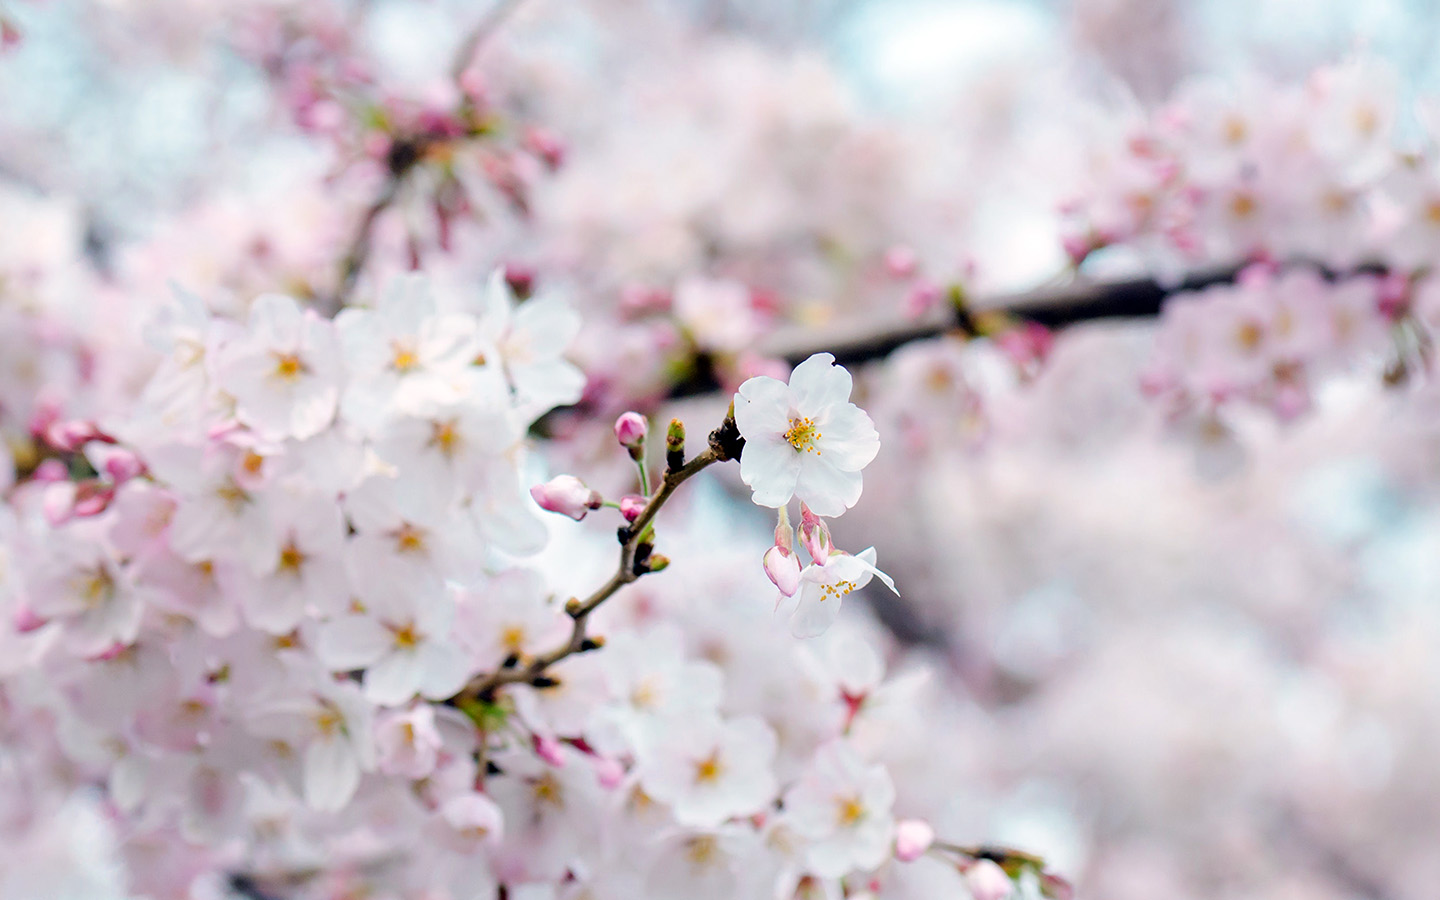 Small Car Wallpaper Hd Nx70 Cherry Blossom Flower Spring Tree Bokeh Nature Wallpaper